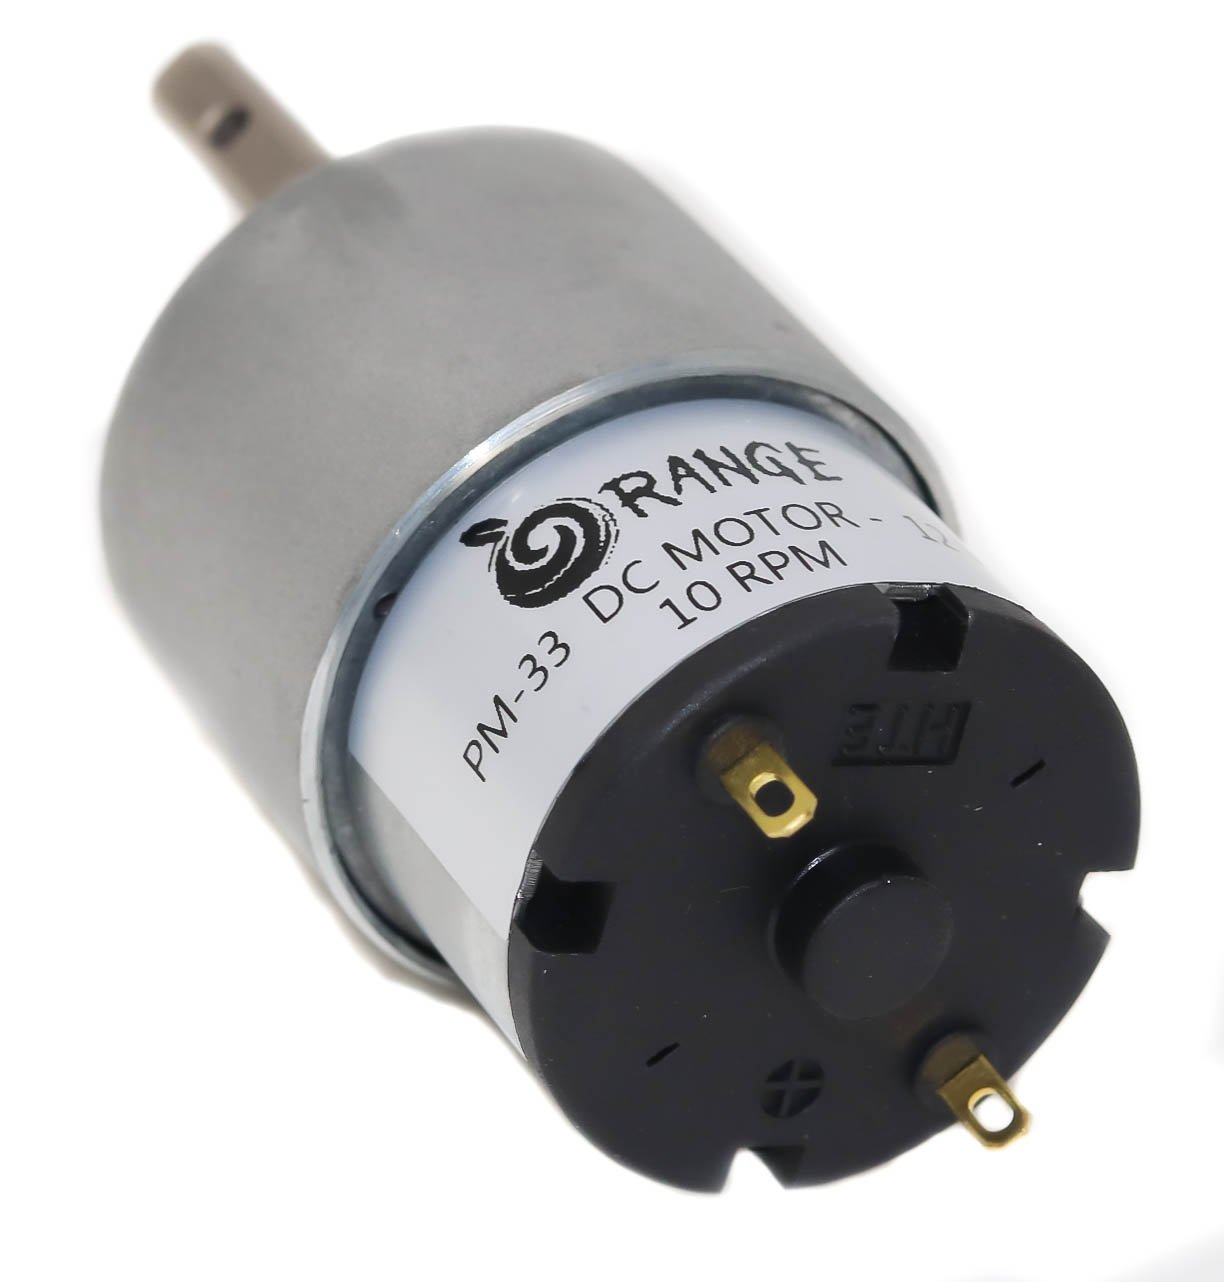 Orange PM33 12v 10RPM DC motor for DIY projects